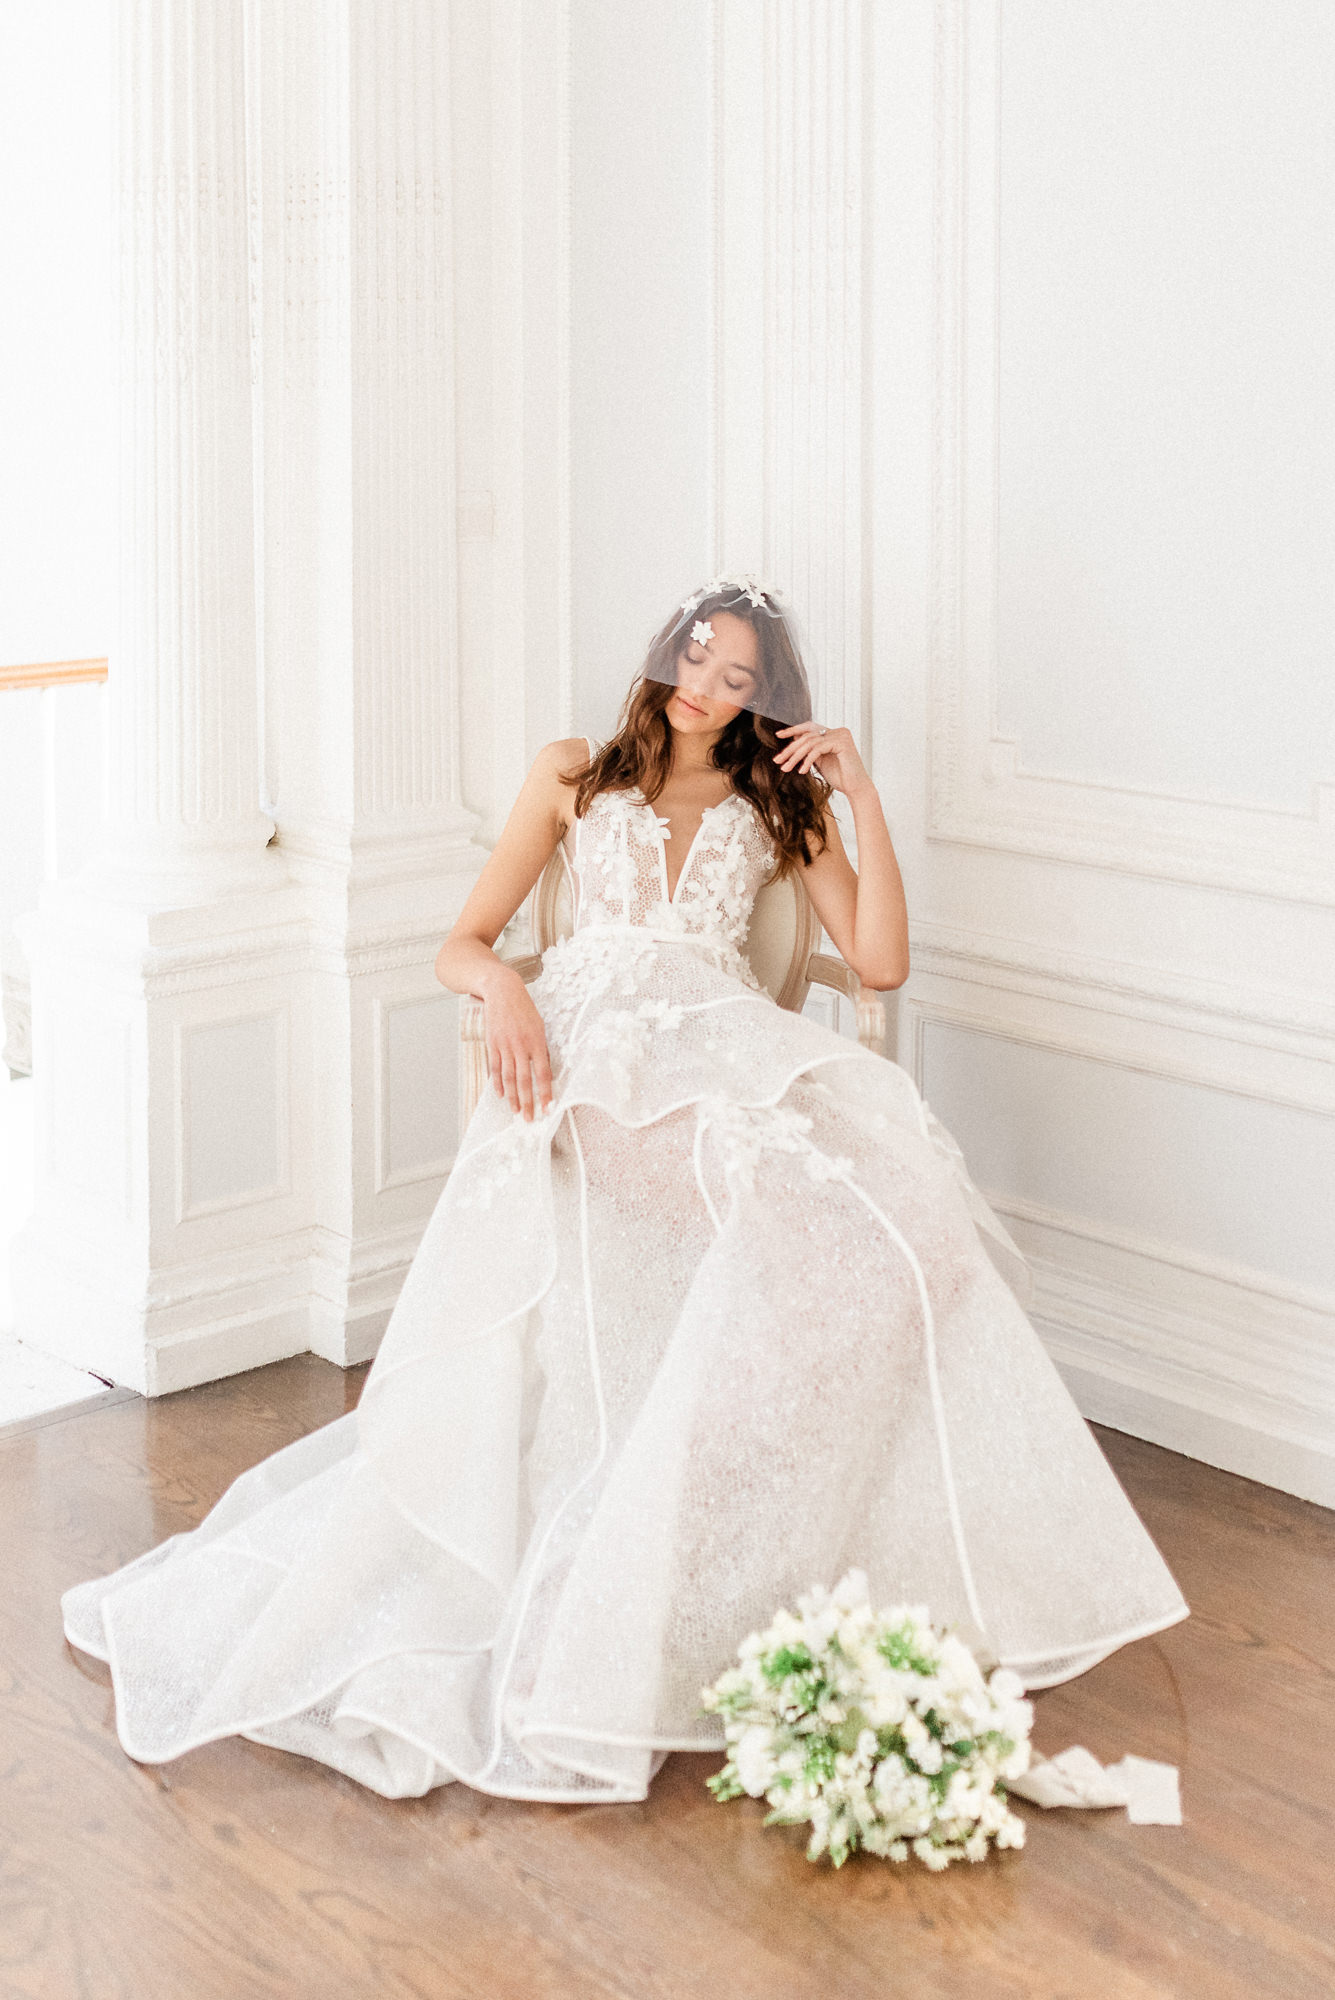 fashion-bride-rests-instructure-lace-gown-worlds-best-wedding-photos-gianluca-adovasio-italy-wedding-photographers